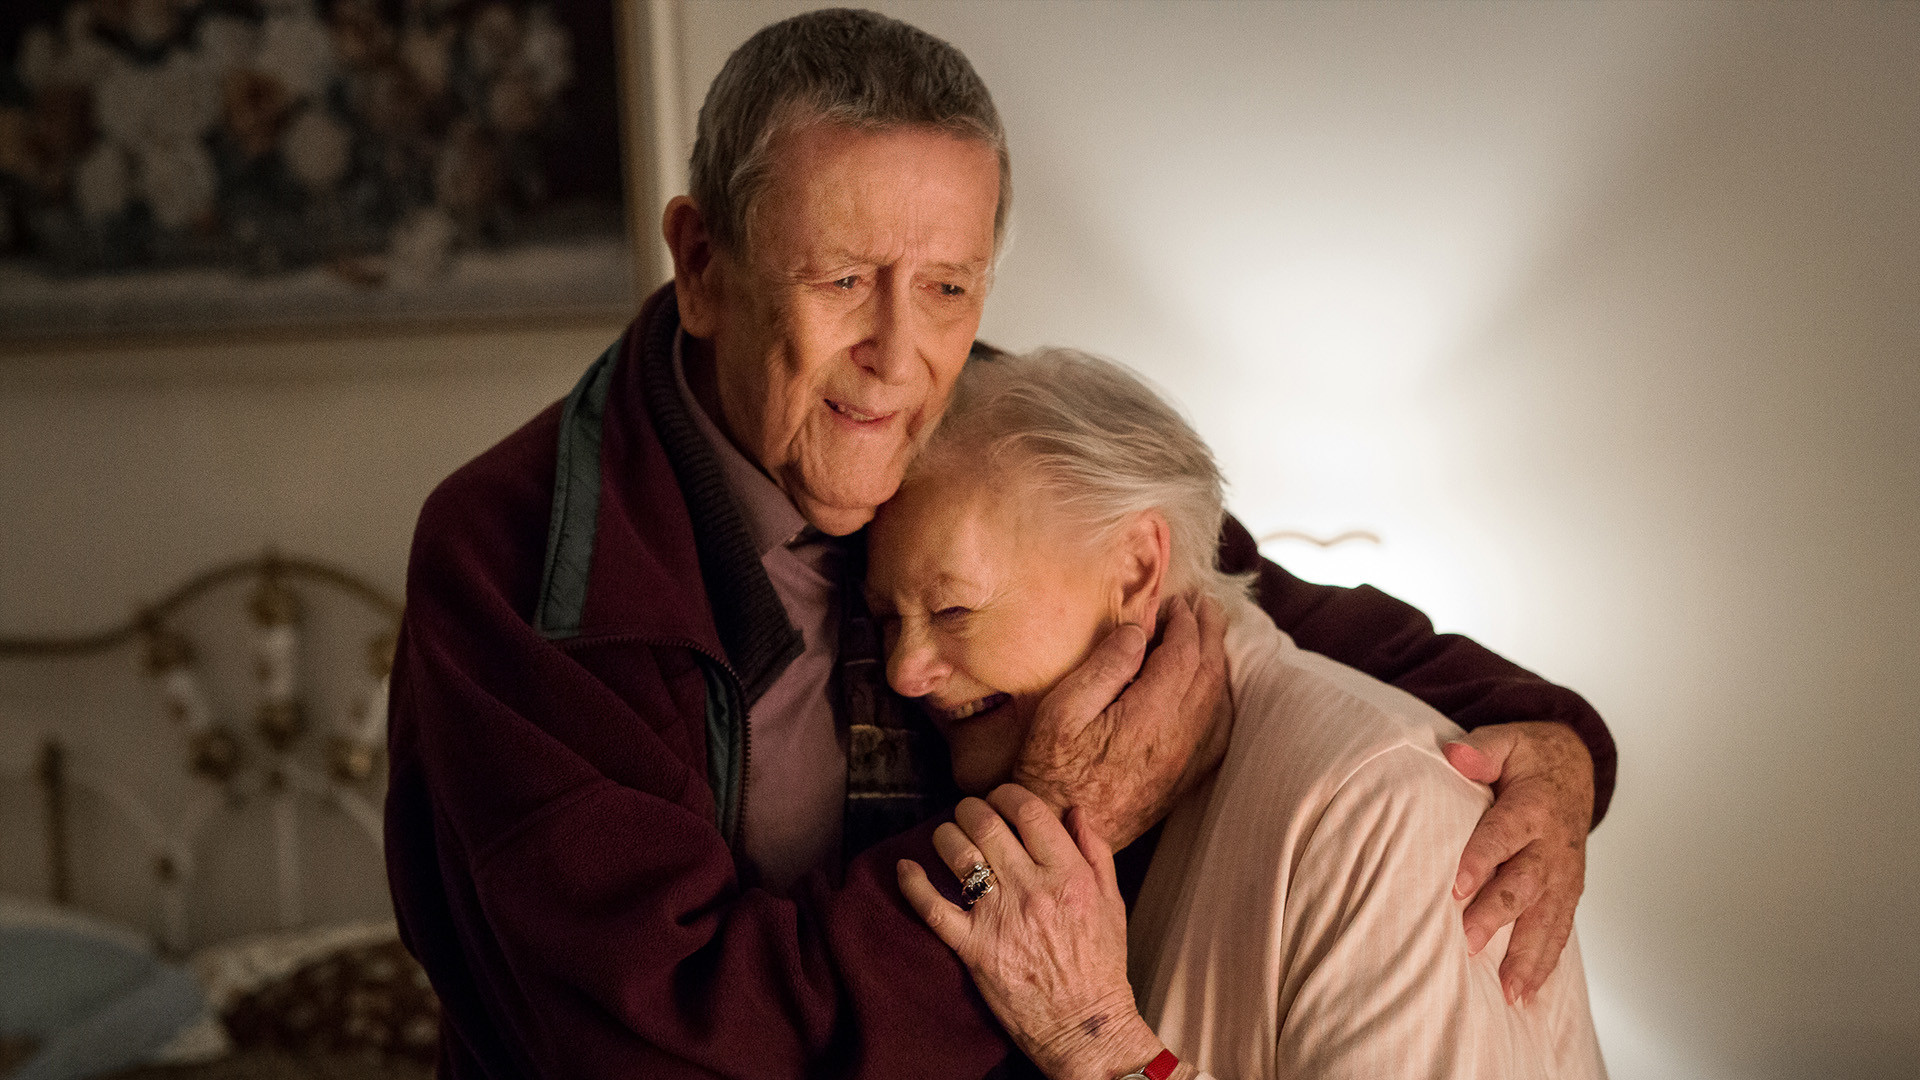 Photo 2 THE_PACT_still_2_-_Desmond_Kelly_as_Frank_and_Kate_Harcourt_as_Betty.jpg